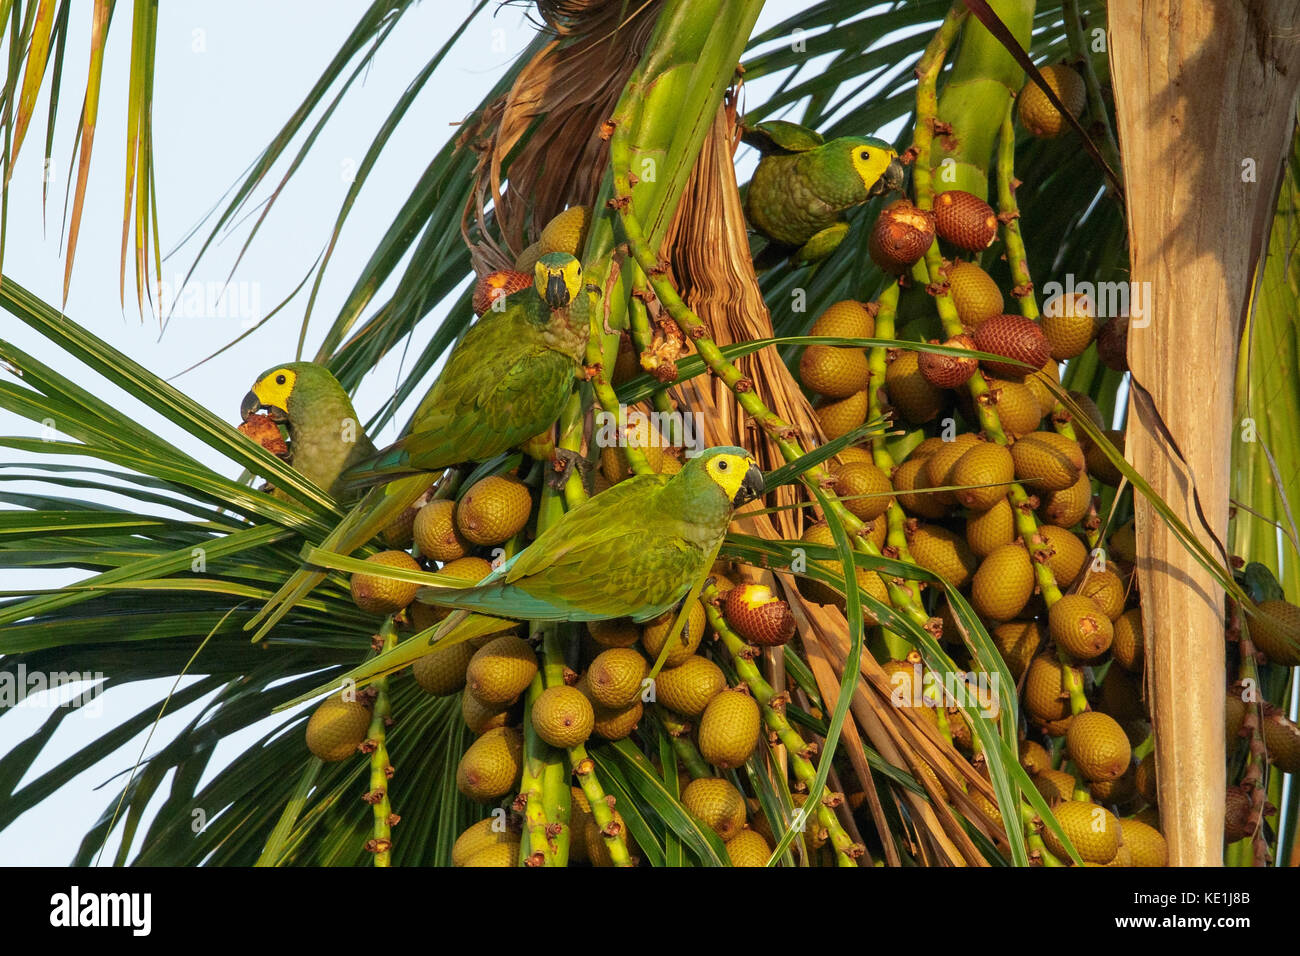 perched on a branch in the grasslands of Guyana - Stock Image